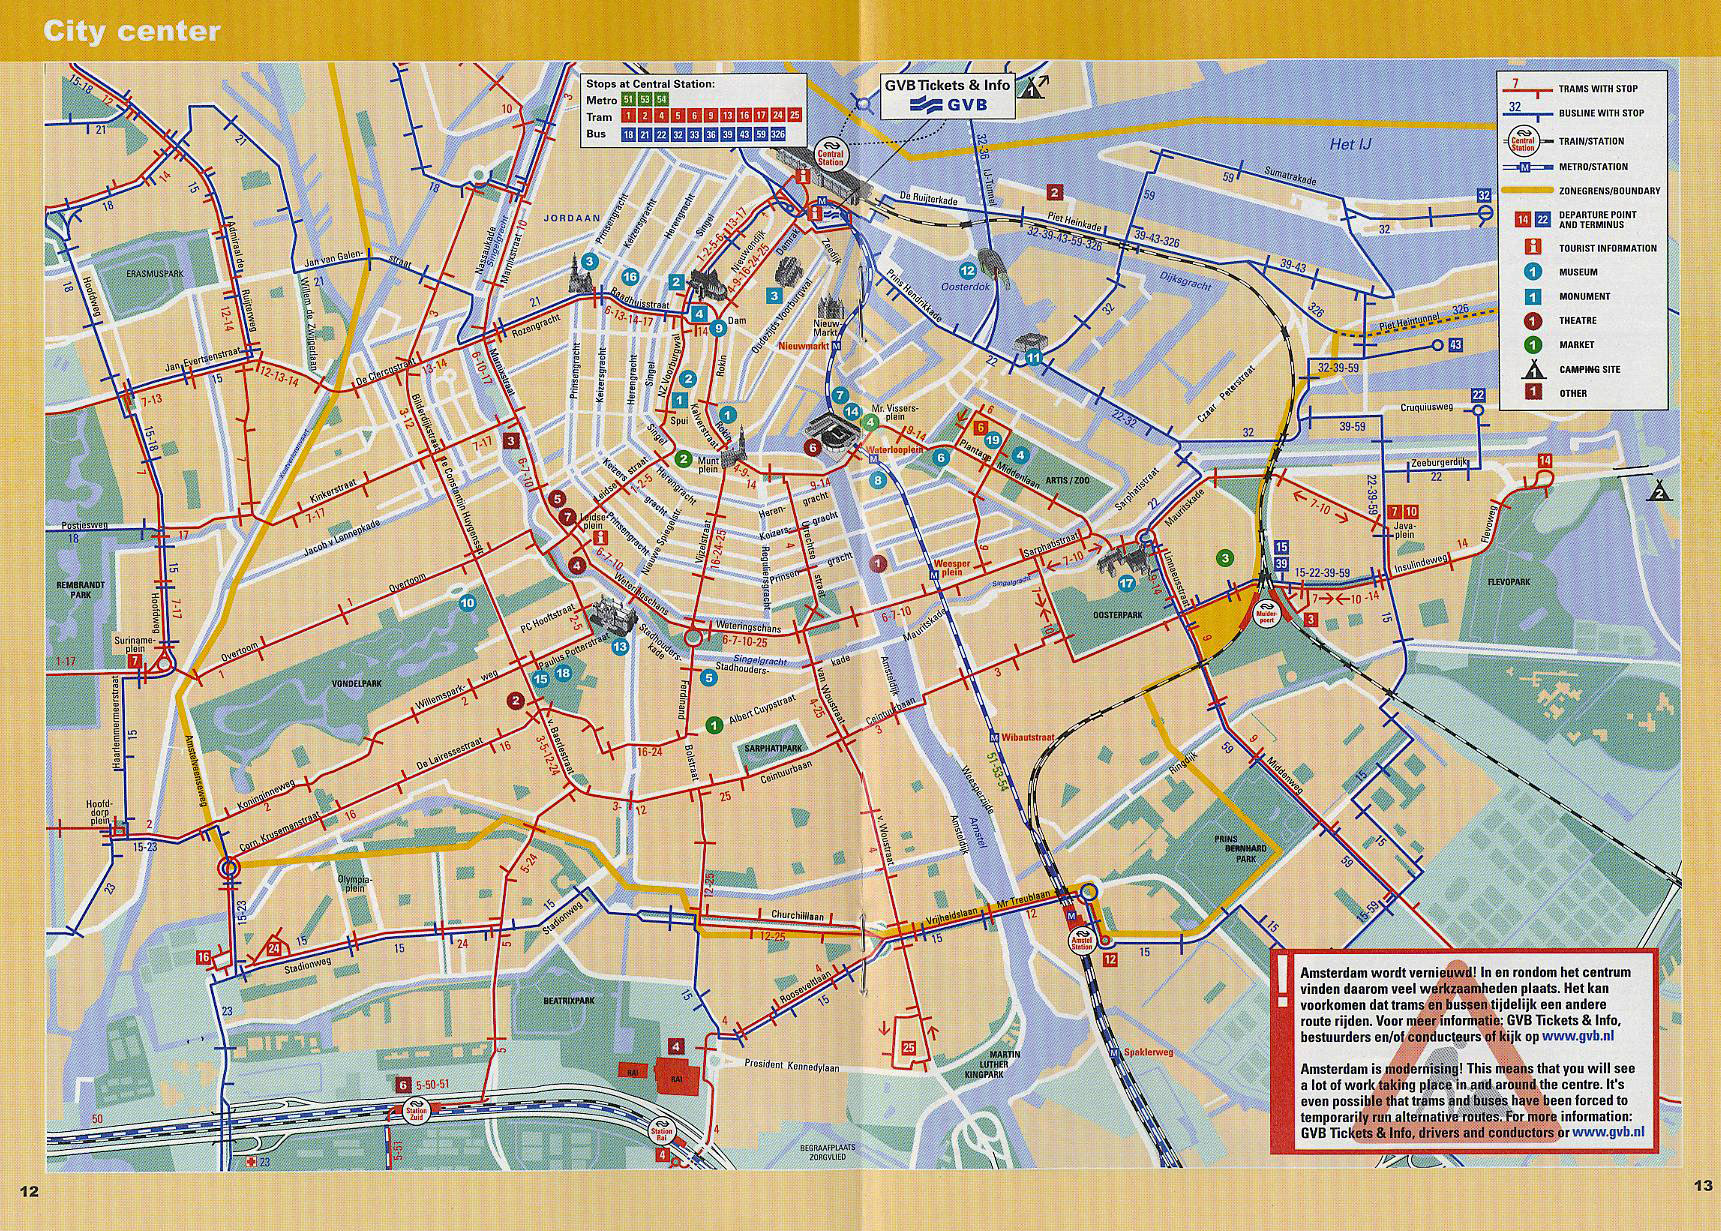 Maps of amsterdam detailed map of amsterdam in english maps of large detailed tram and metro map of central part of amsterdam city publicscrutiny Images